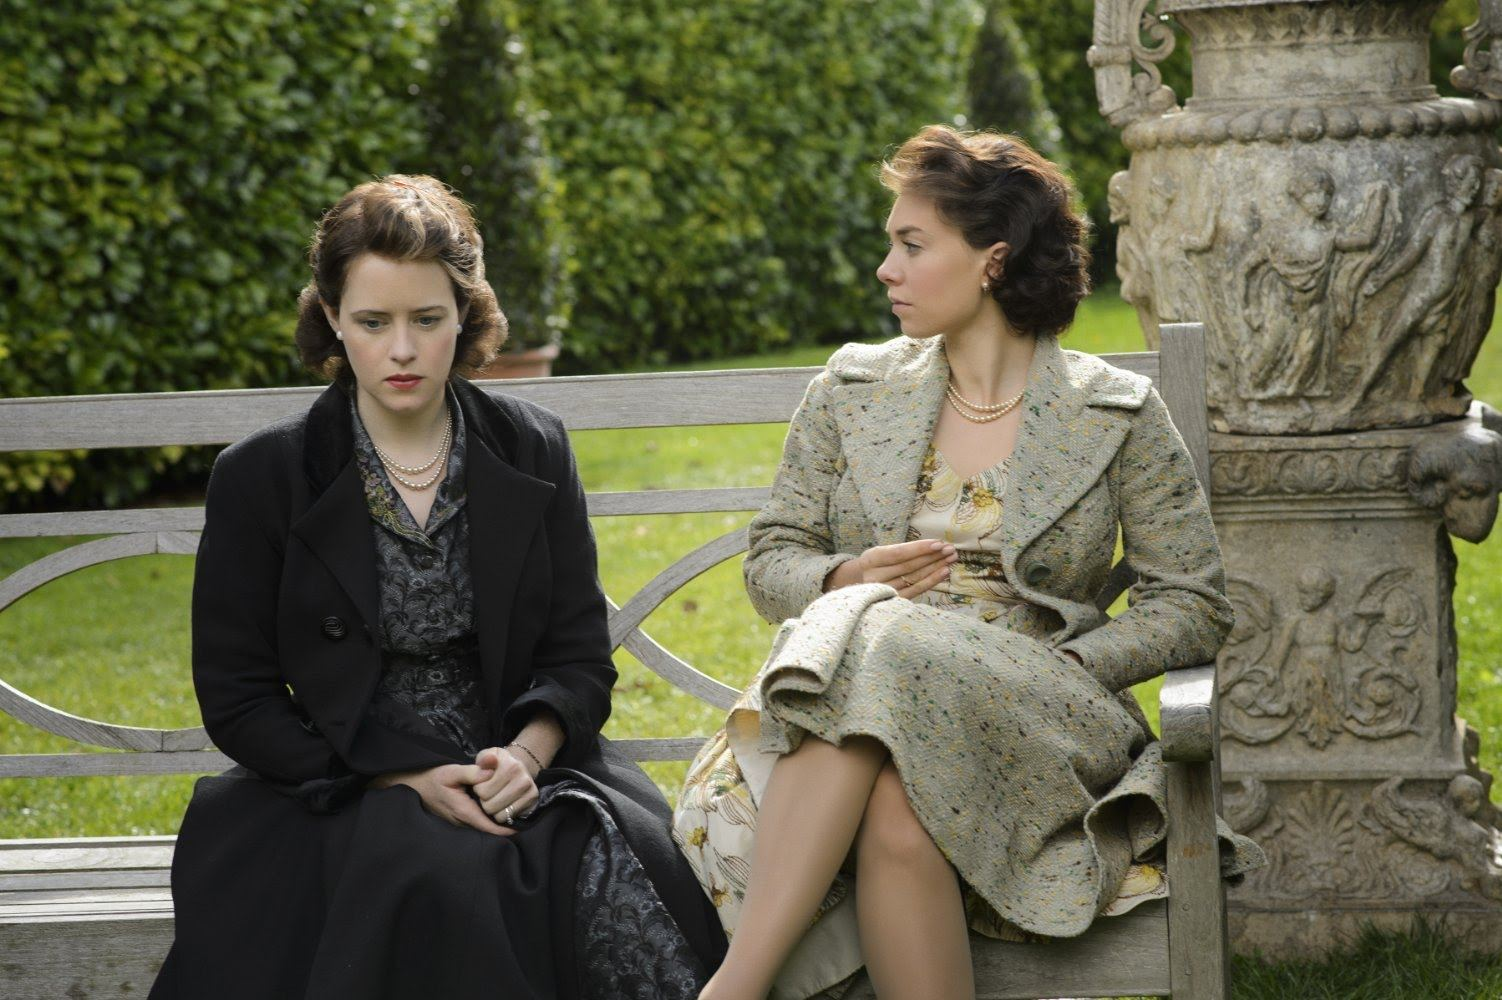 Claire Foy as Princess Elizabeth and Vanessa Kirby as Princess Margaret in The Crown